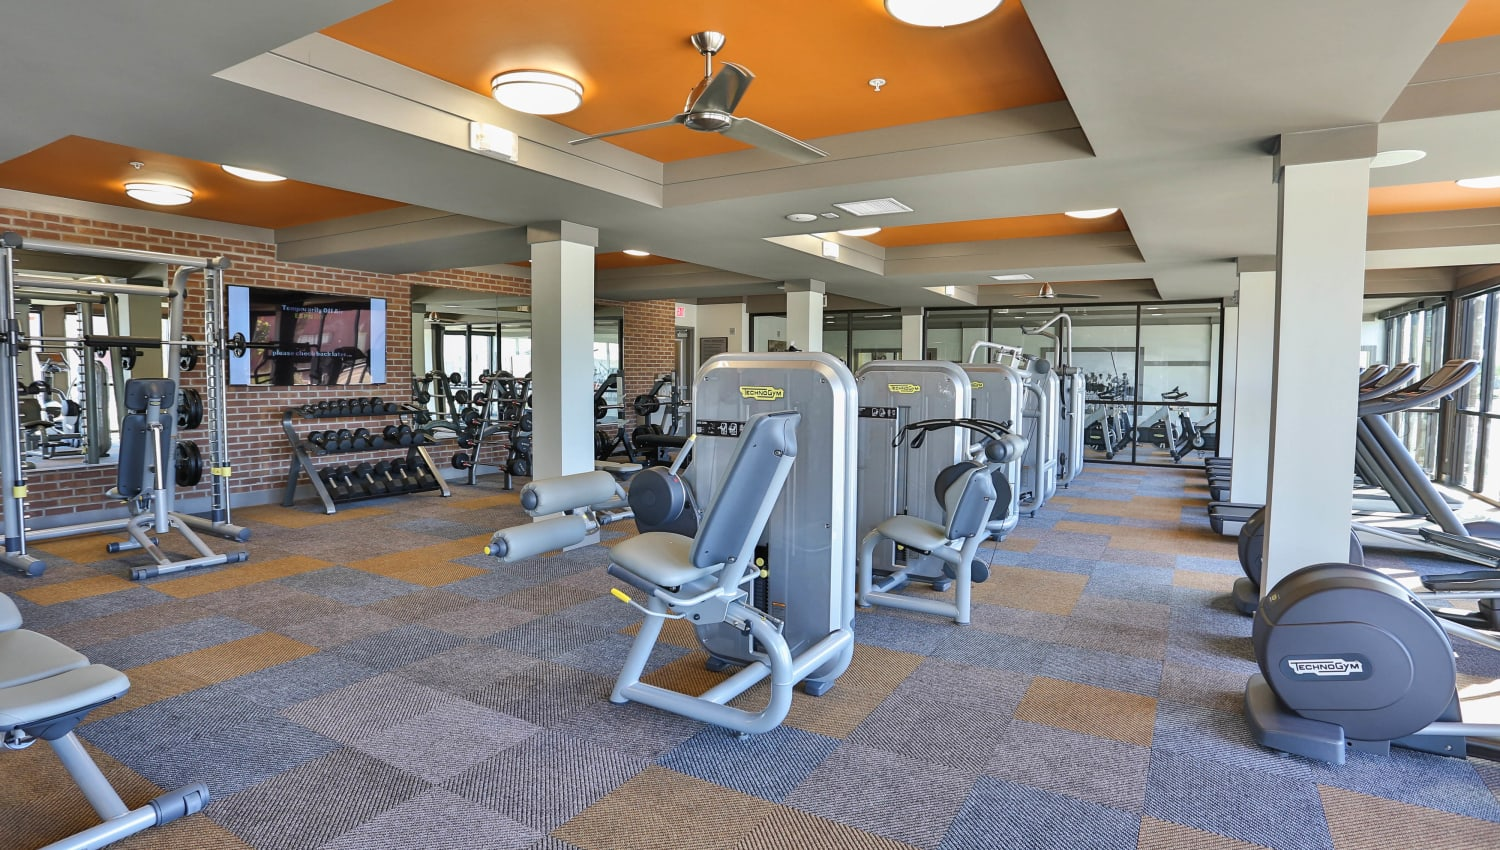 Wide variety of exercise machines in the fitness center at Olympus Steelyard in Chandler, Arizona